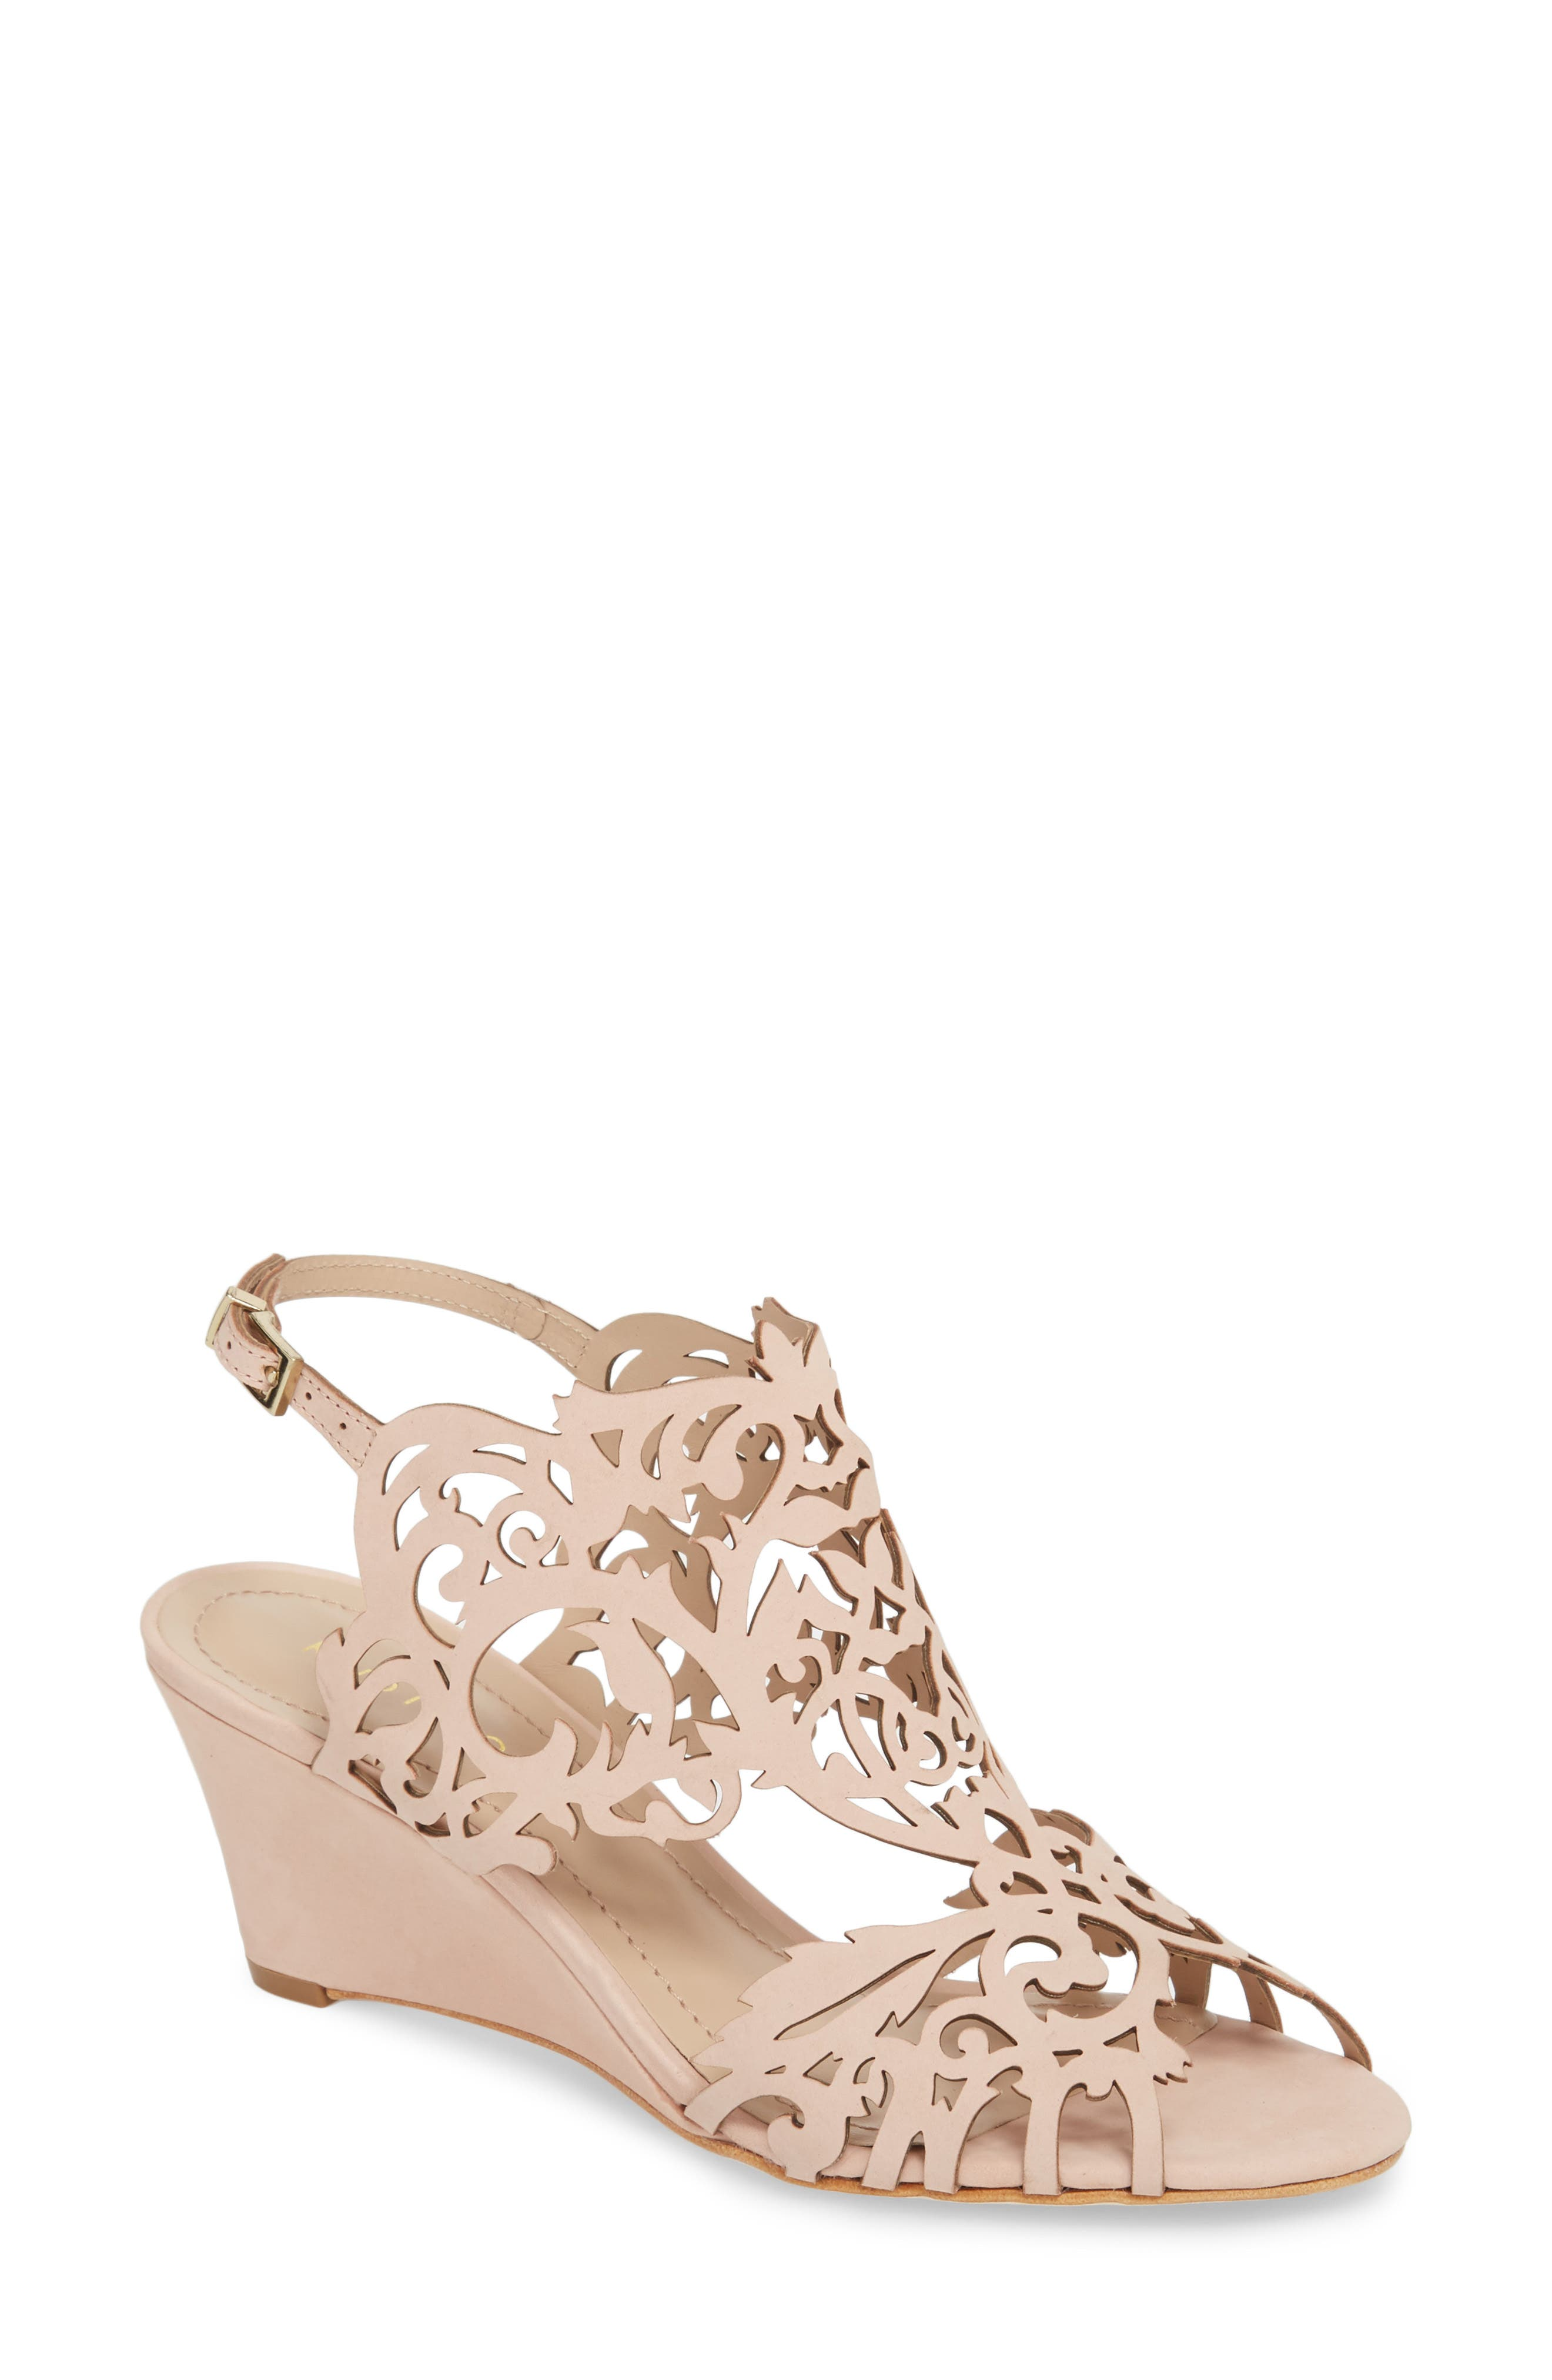 Marcela Laser Cutout Wedge Sandal,                         Main,                         color, Blush Leather